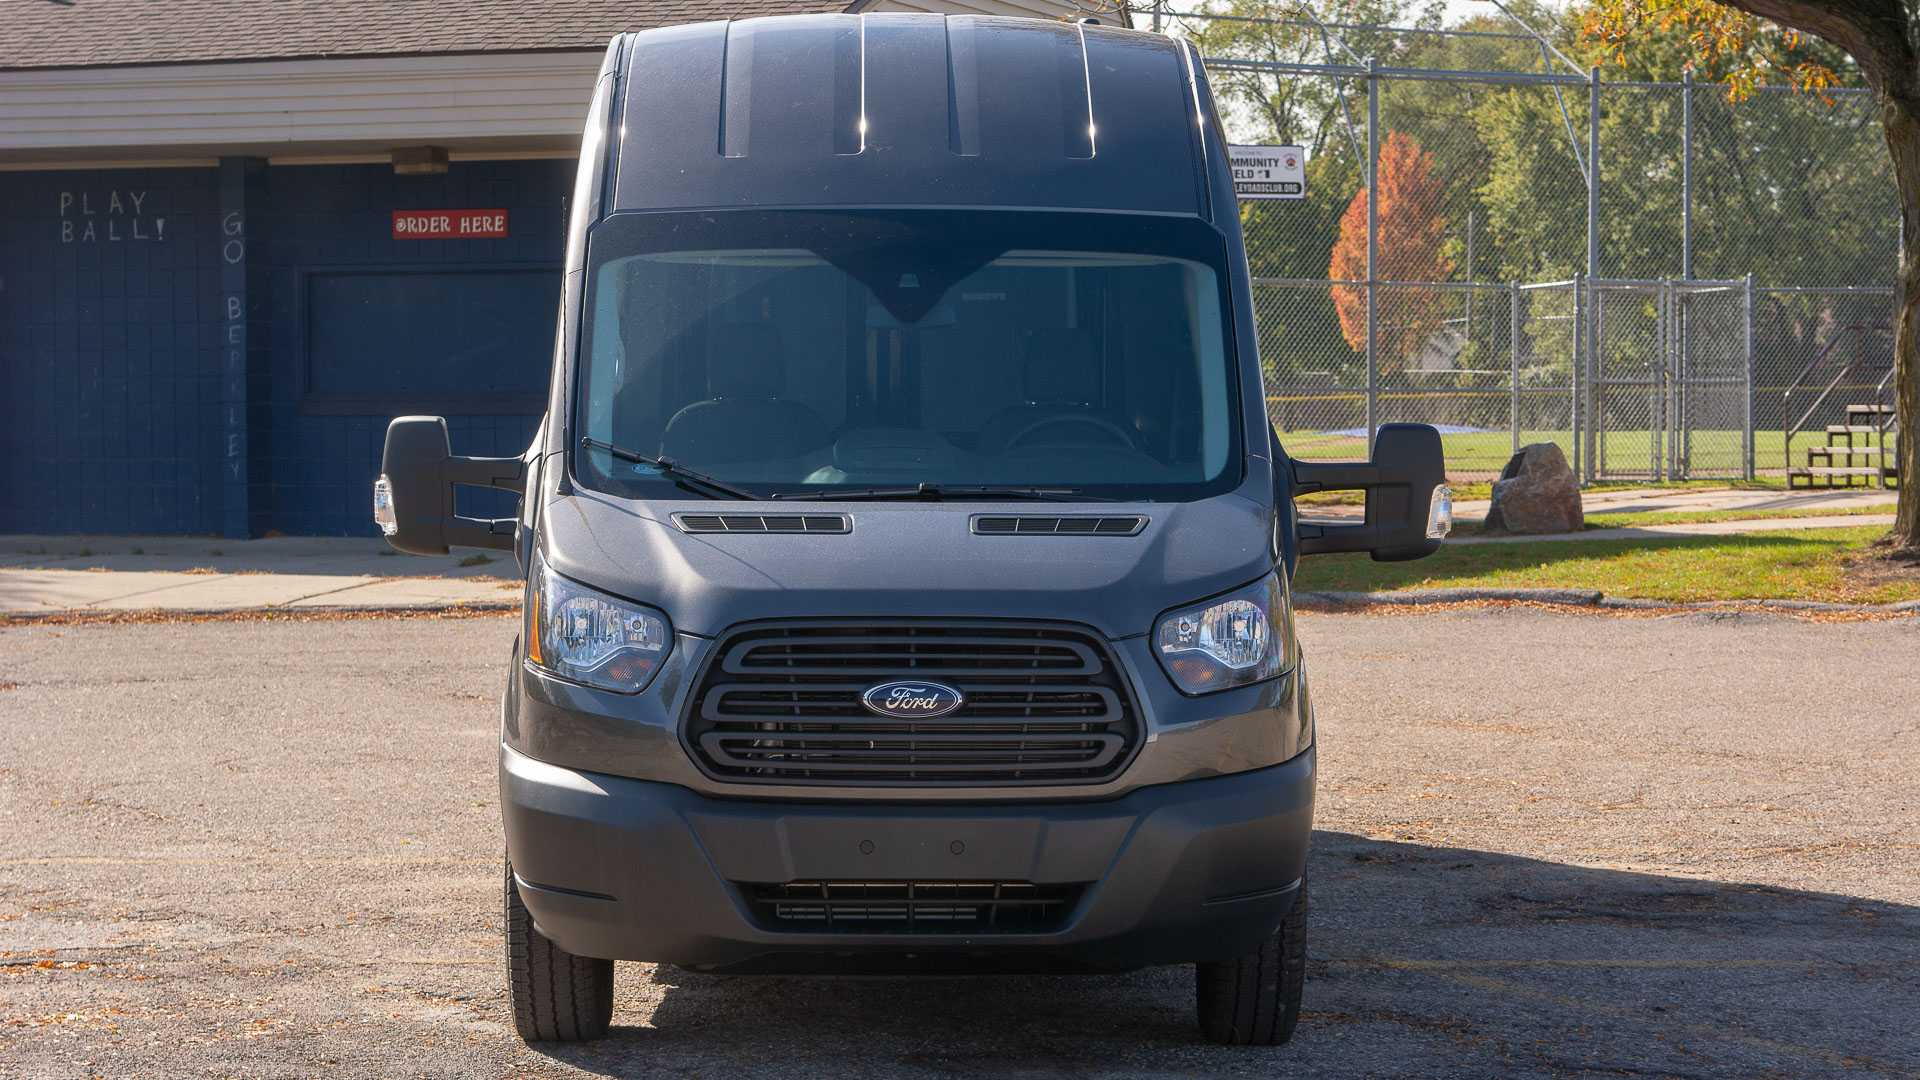 2018 Ford Transit 250HR Cargo Van Review: A Big, Fat Focus